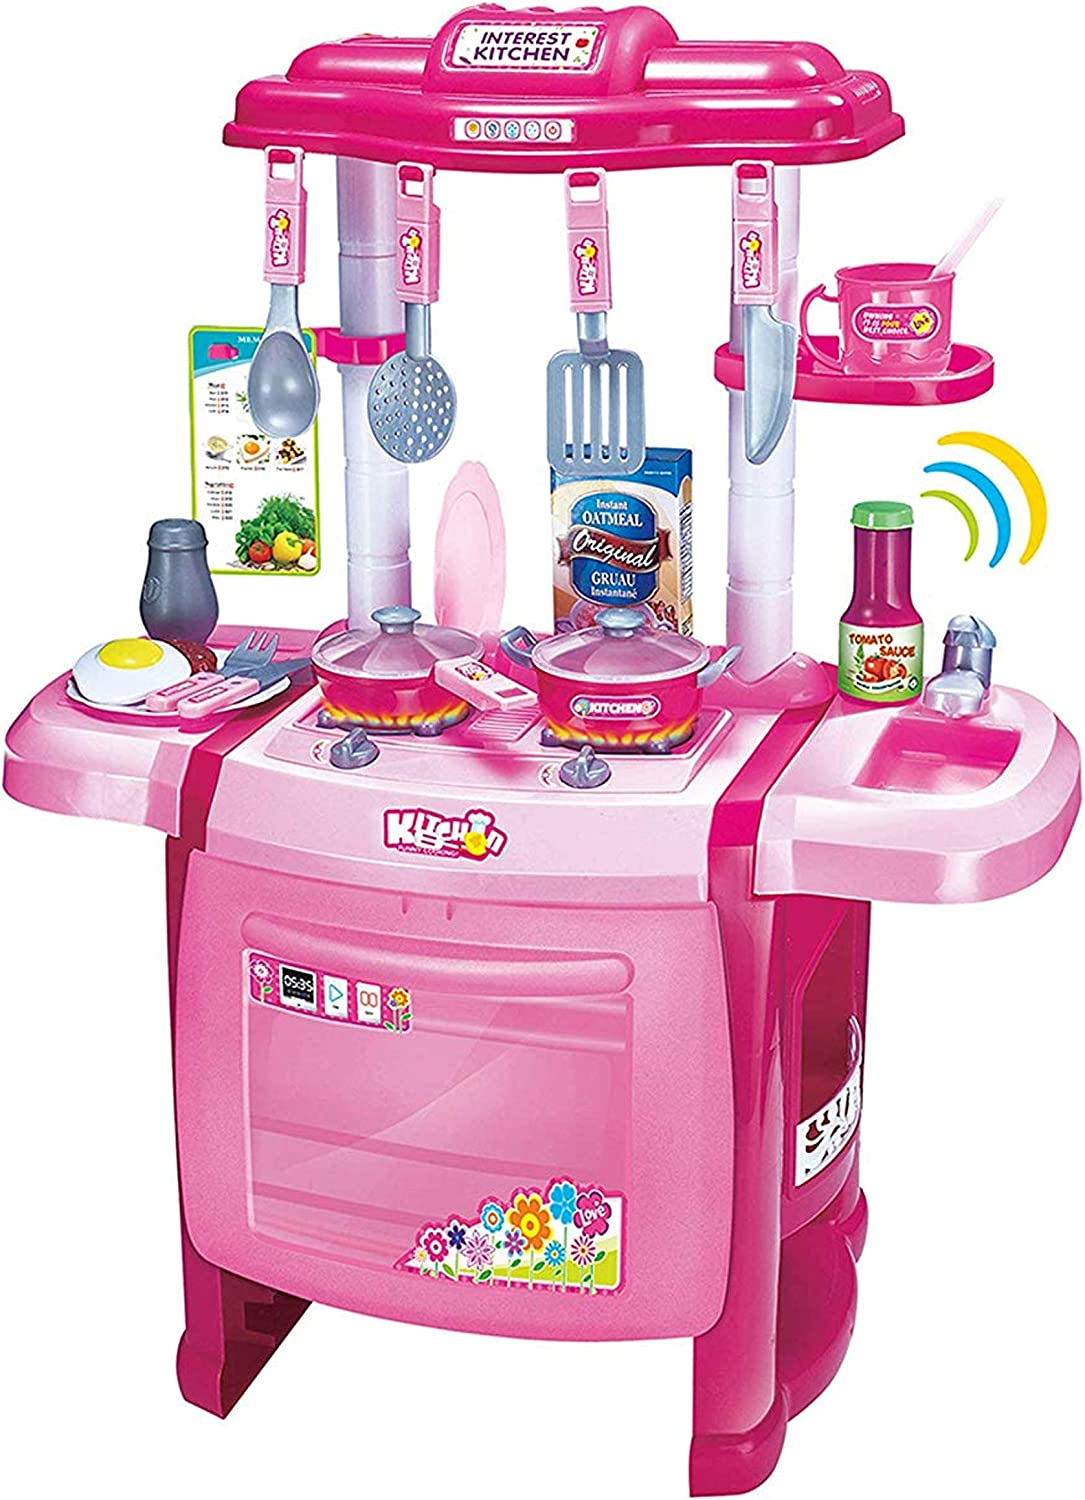 Amazon Com Mozlly Jumbo Cook Electronic Complete Kitchen Playset 24 5 Toddler Cooking Toys For Kids With Oven Sink Stovetop Cookware Pretend Play With Lights Sound Effects Colors May Vary Toys Games